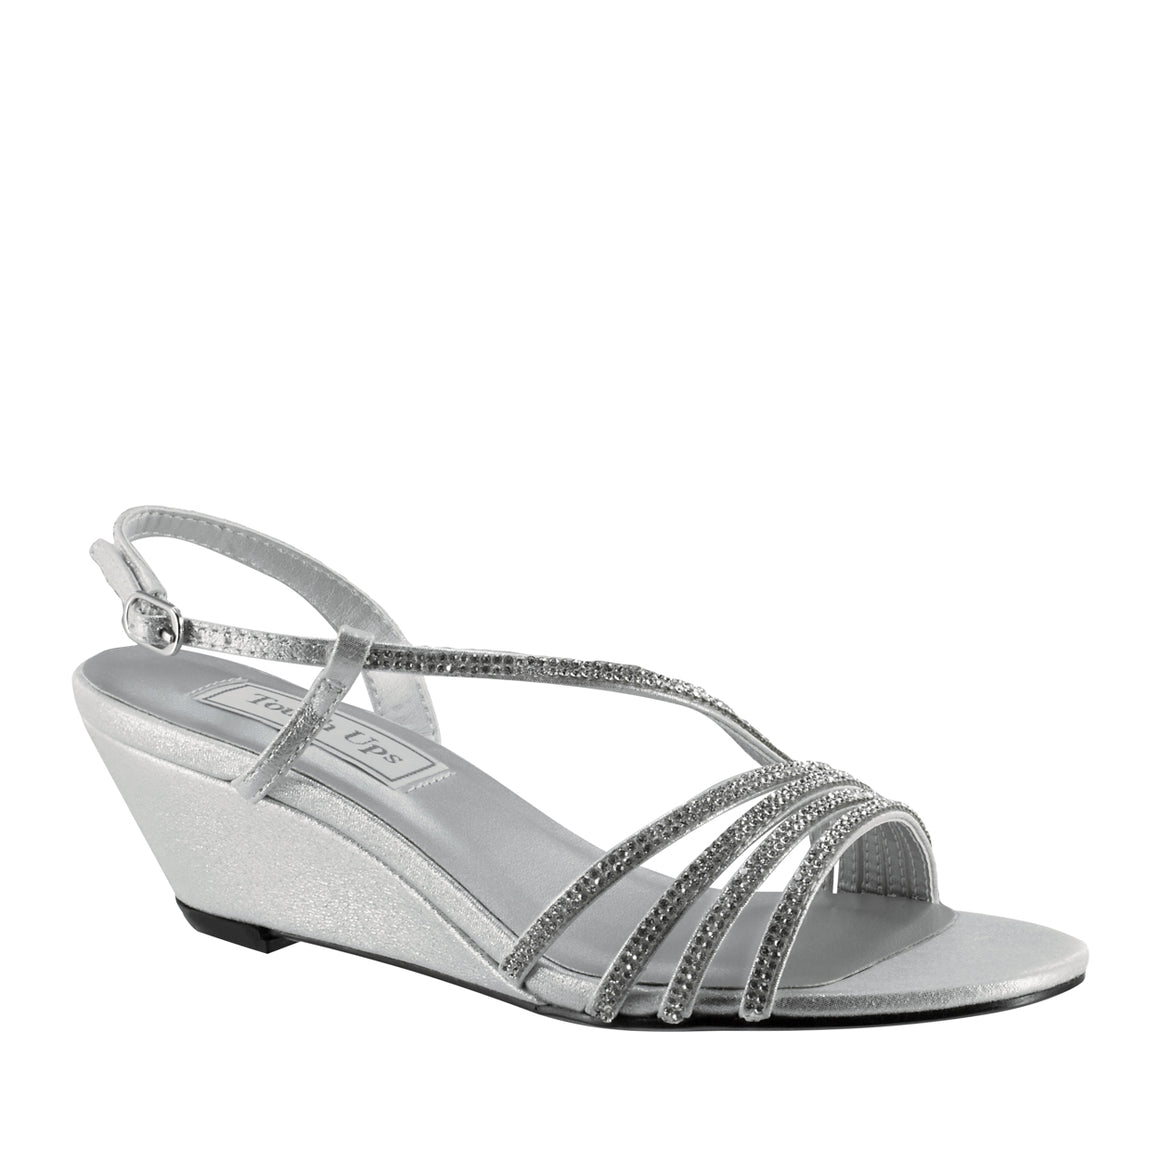 Celeste Wedge Sandal with Asymmetrical Straps in Silver